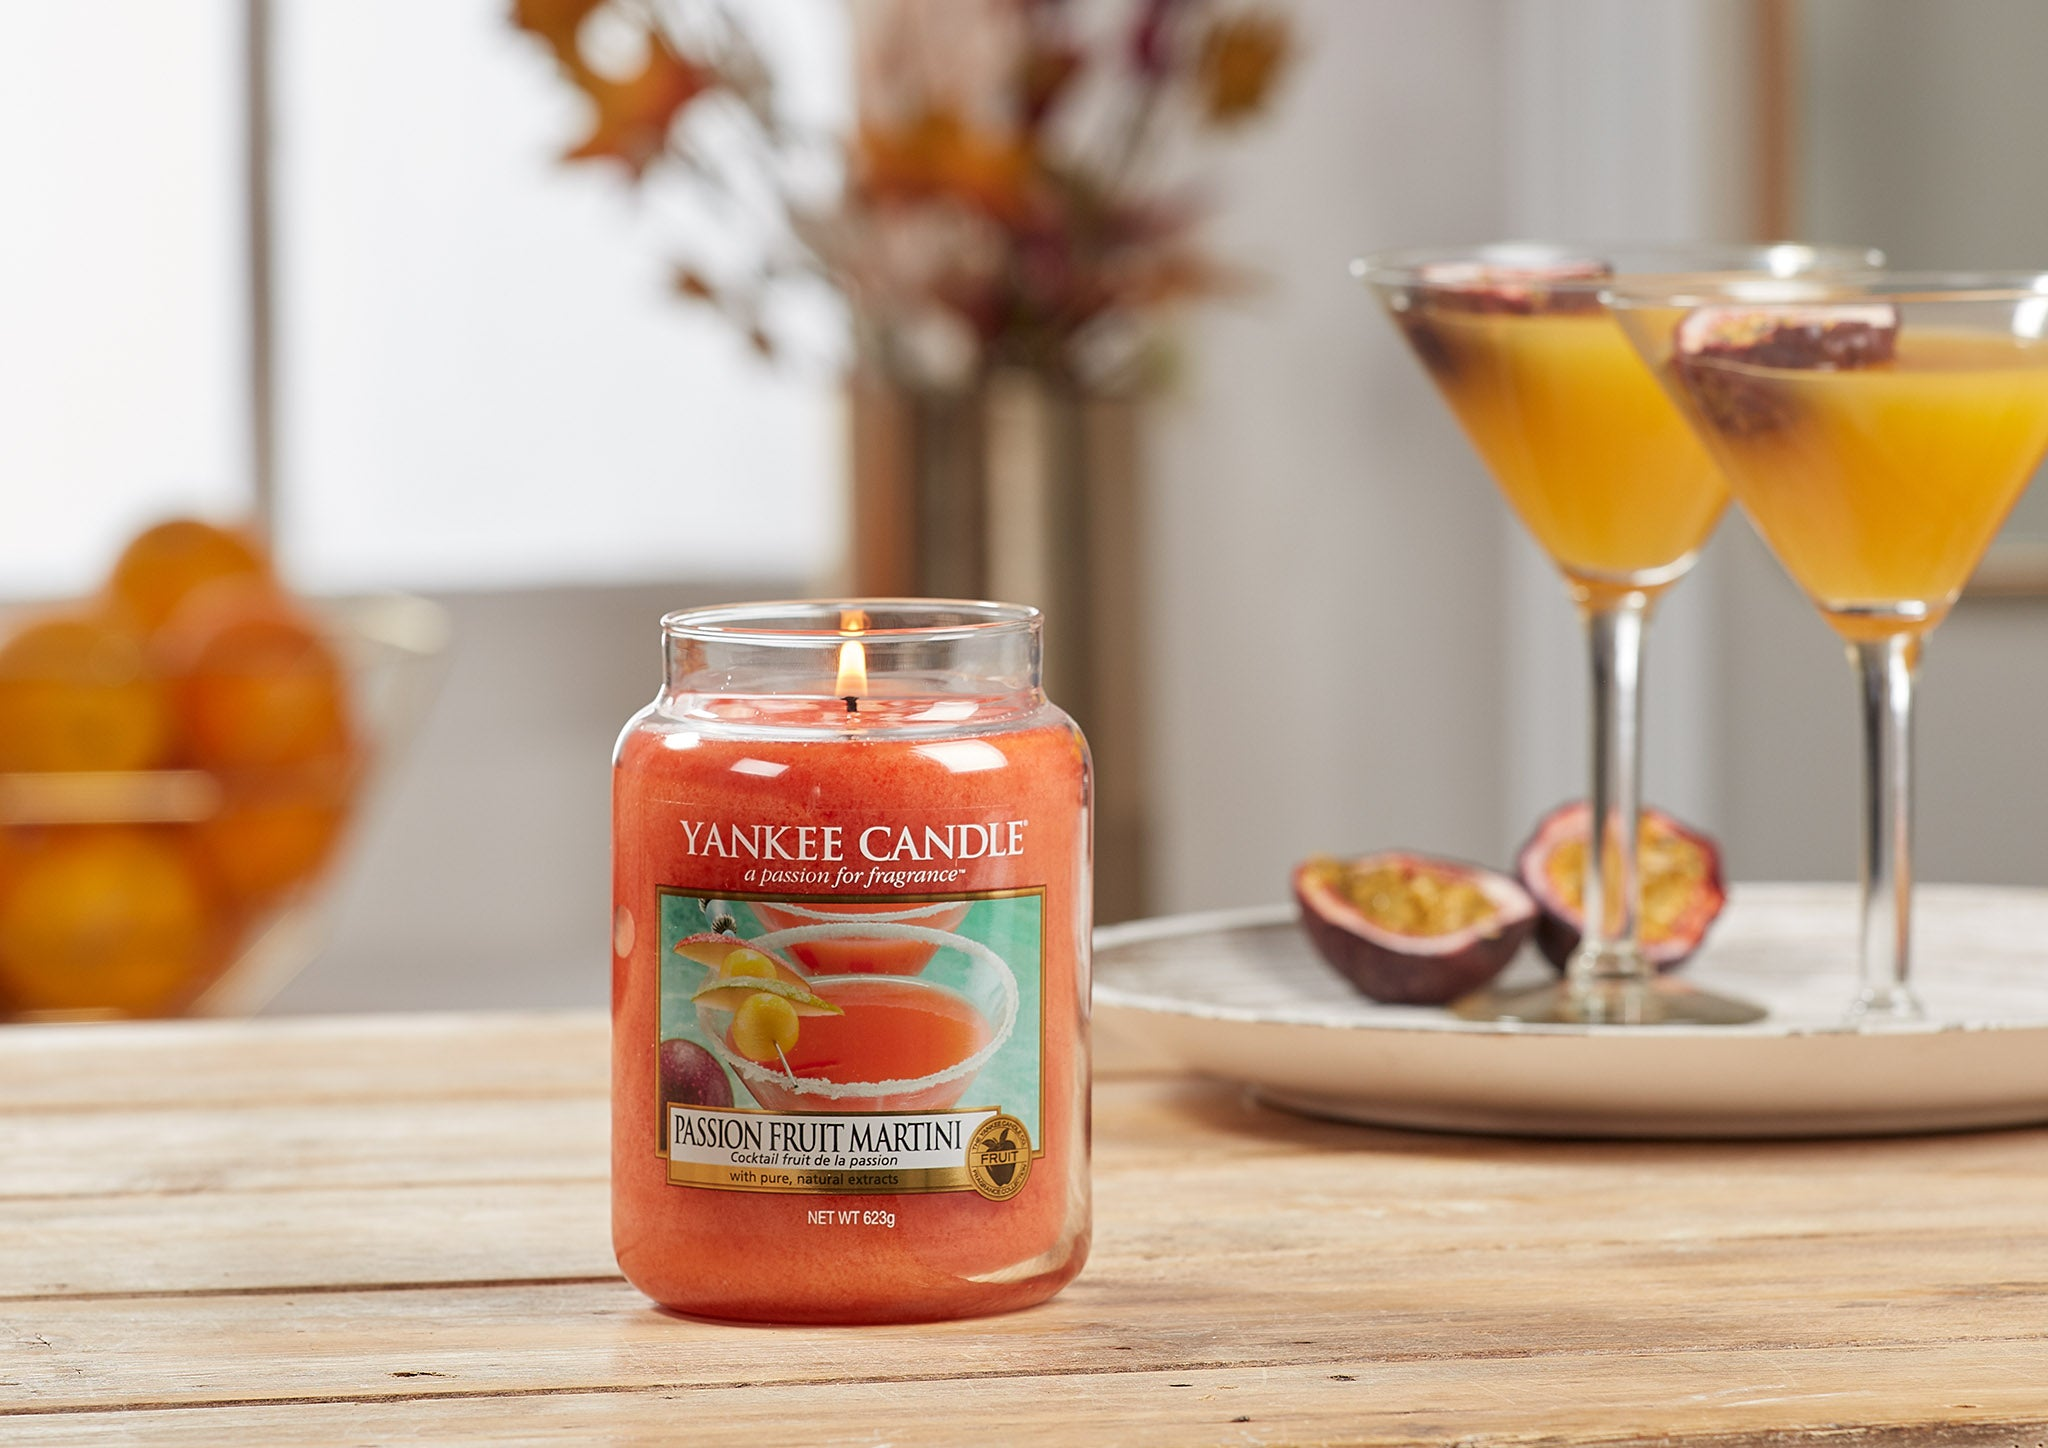 PASSION FRUIT MARTINI -Yankee Candle- Tea Light